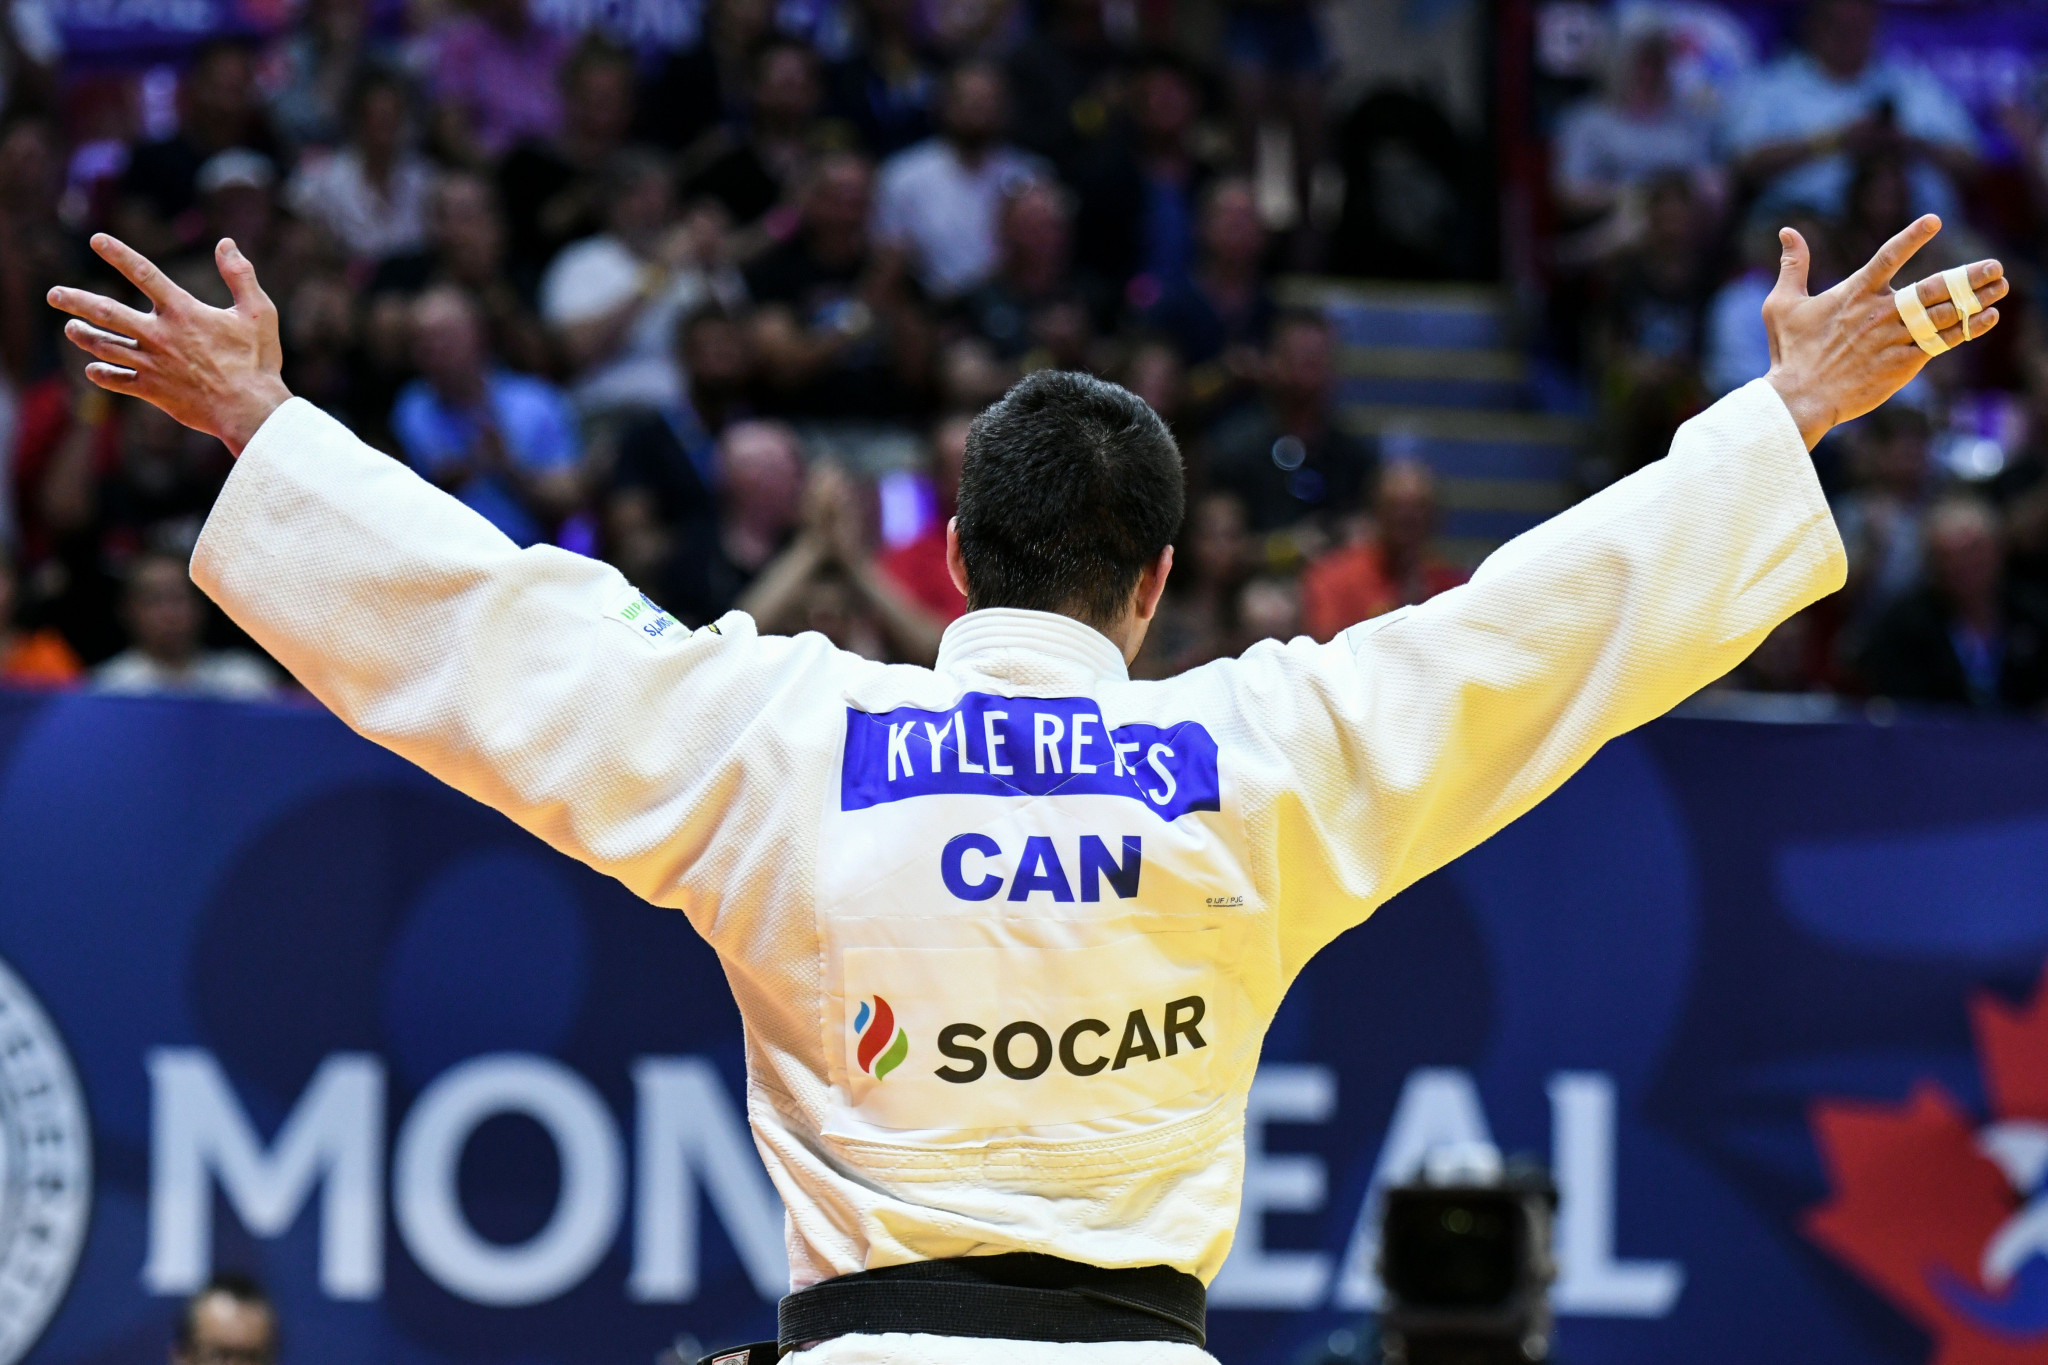 Kyle Reyes gave Canada the country's only gold medal of the Pan American Judo Championships ©Getty Images